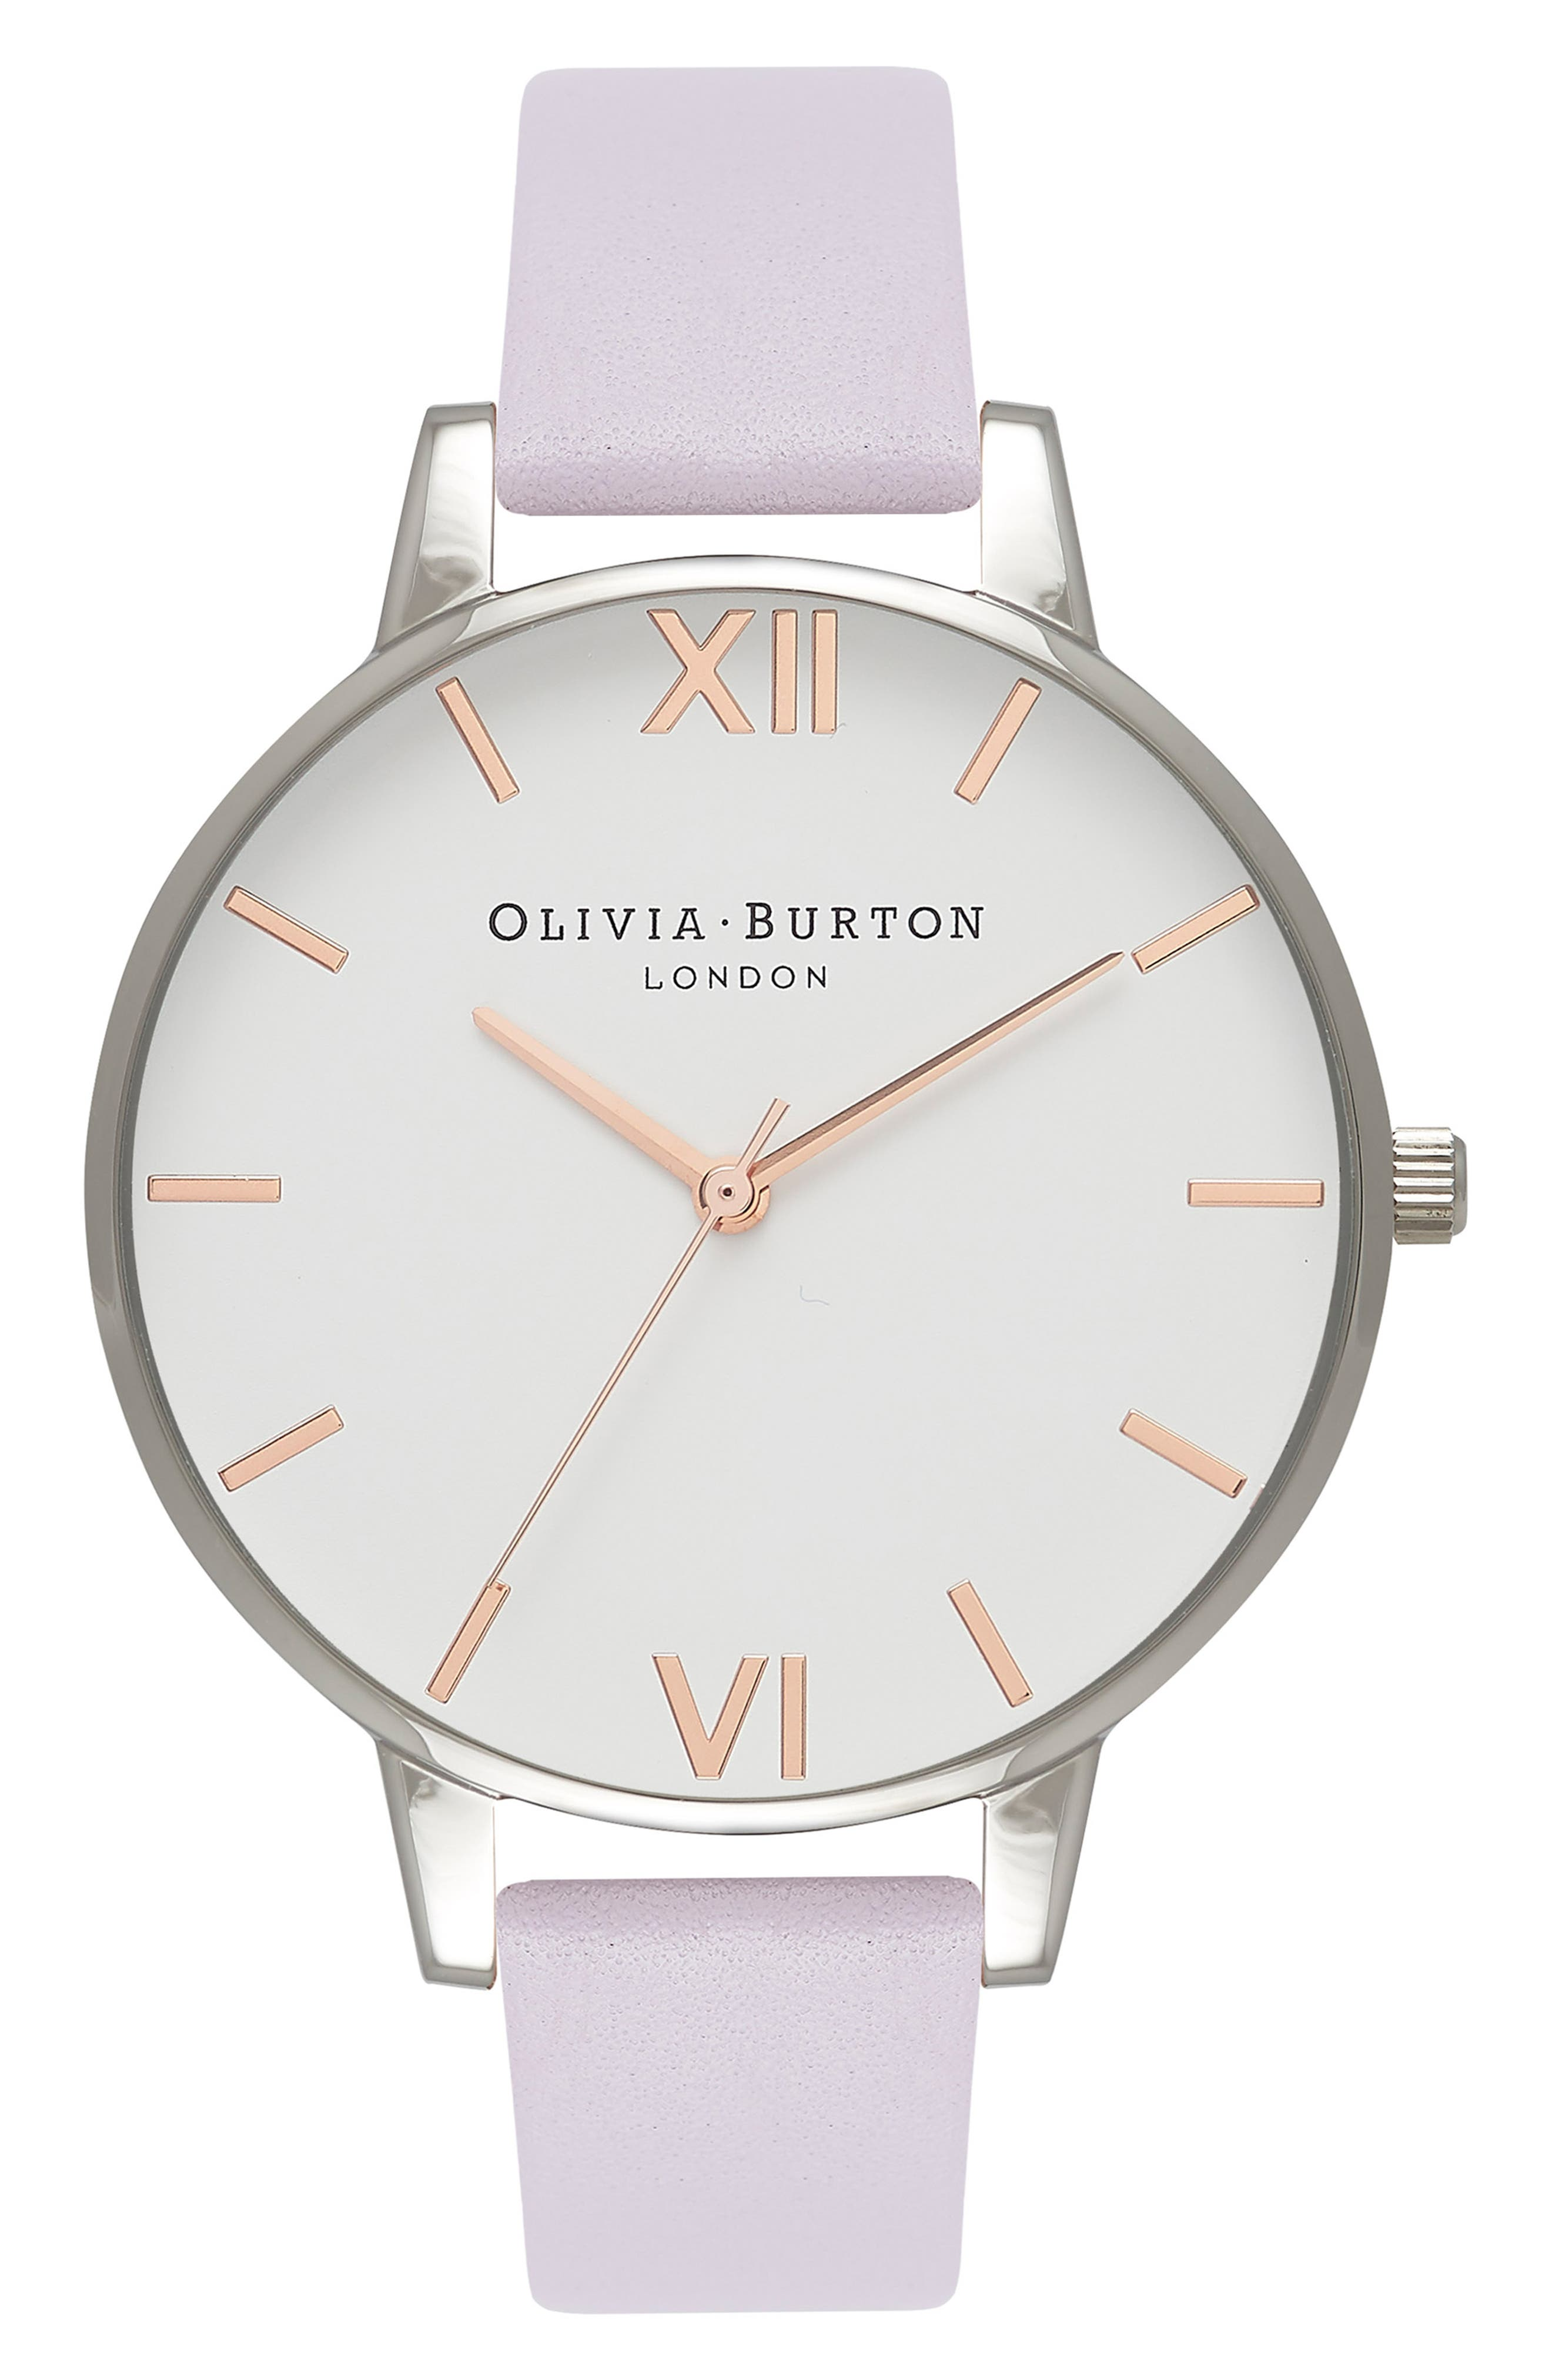 OLIVIA BURTON, White Dial Leather Strap Watch, 38mm, Main thumbnail 1, color, VIOLET/ WHITE/ SILVER